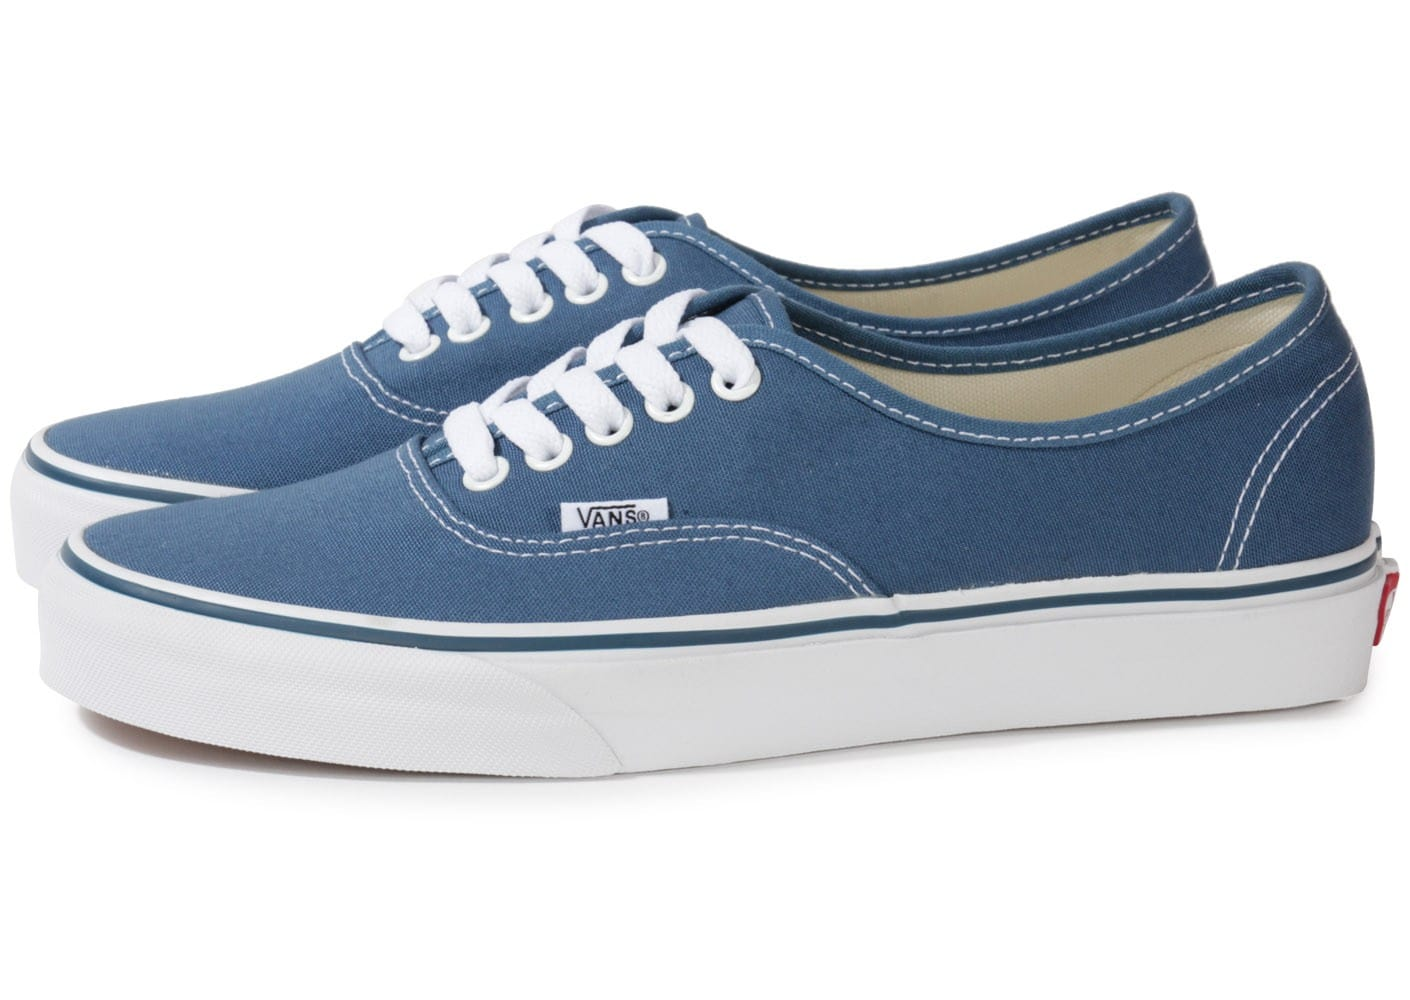 Vans Authentic Bleu - Chaussures Baskets homme - Chausport